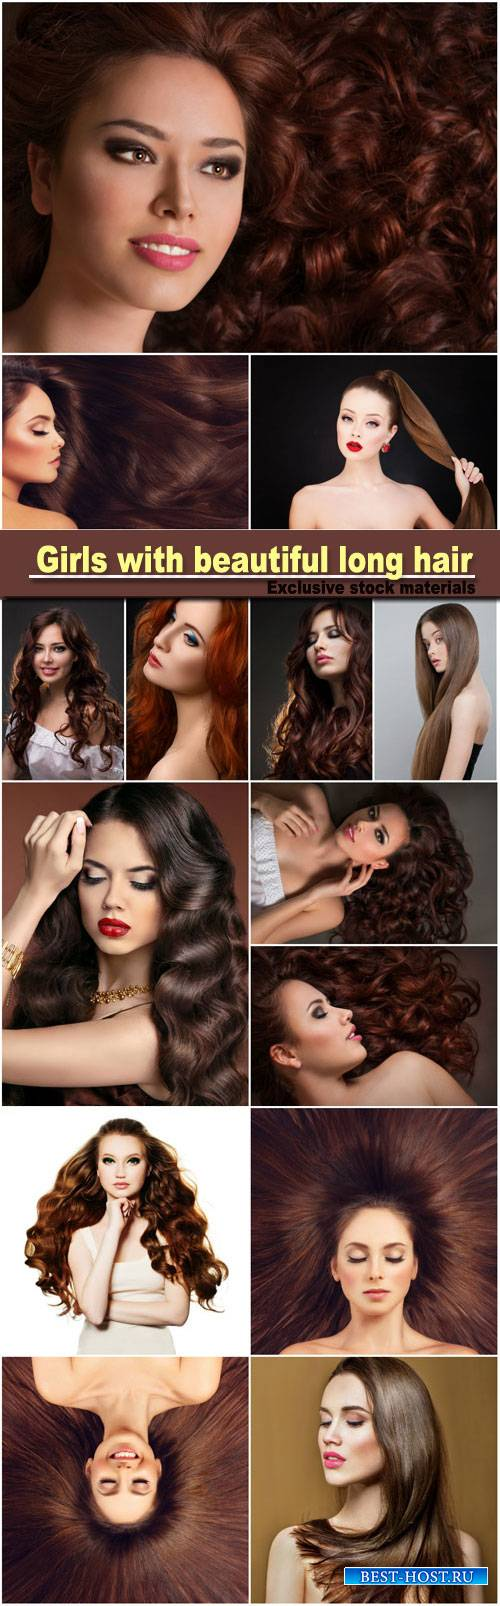 Girls with beautiful long hair, fashionable hairstyles